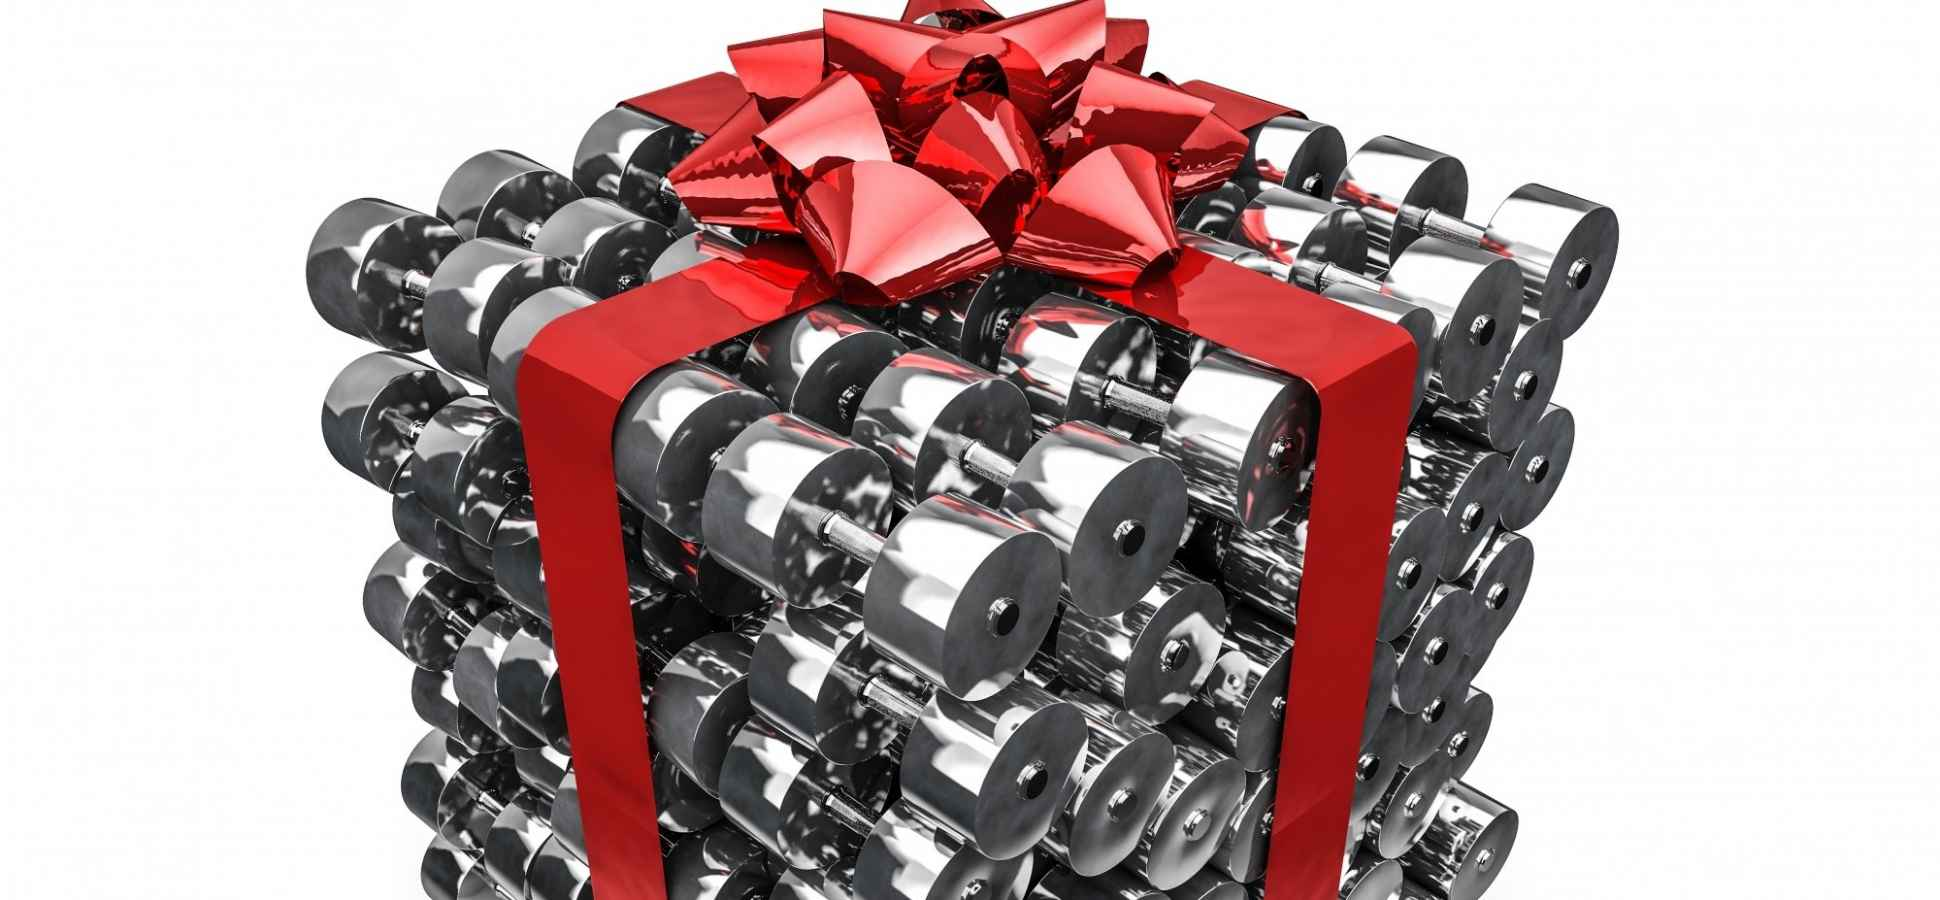 9 Strategies for Staying Focused and Fit During the Holiday Season